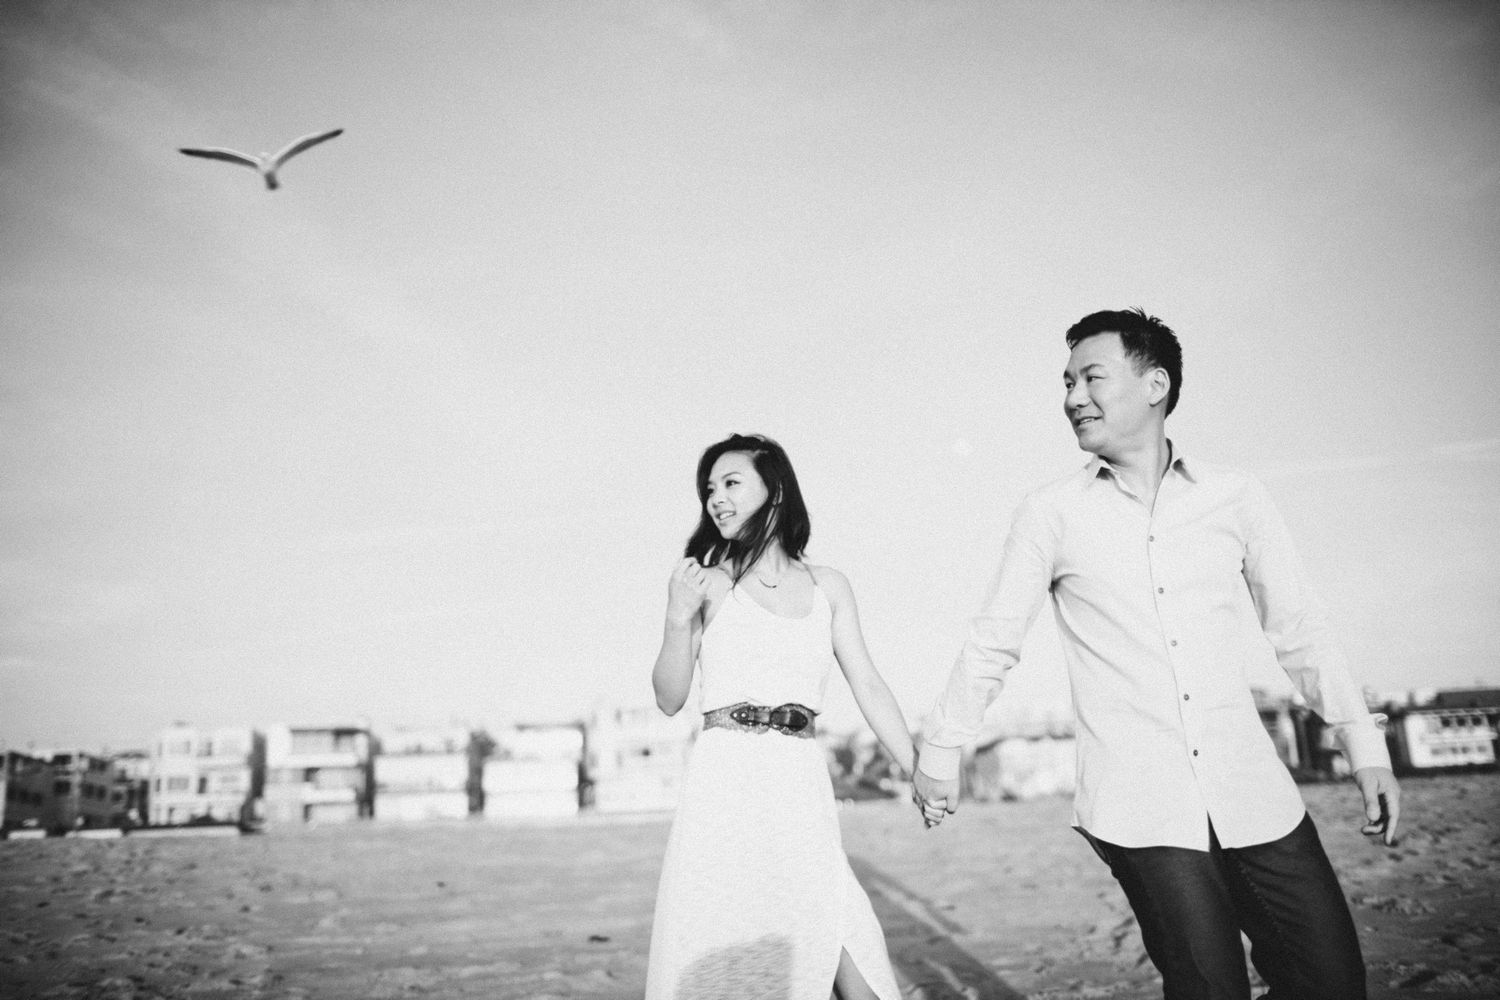 engagement-sessions-johnandjoseph-qj0205_kydy7122